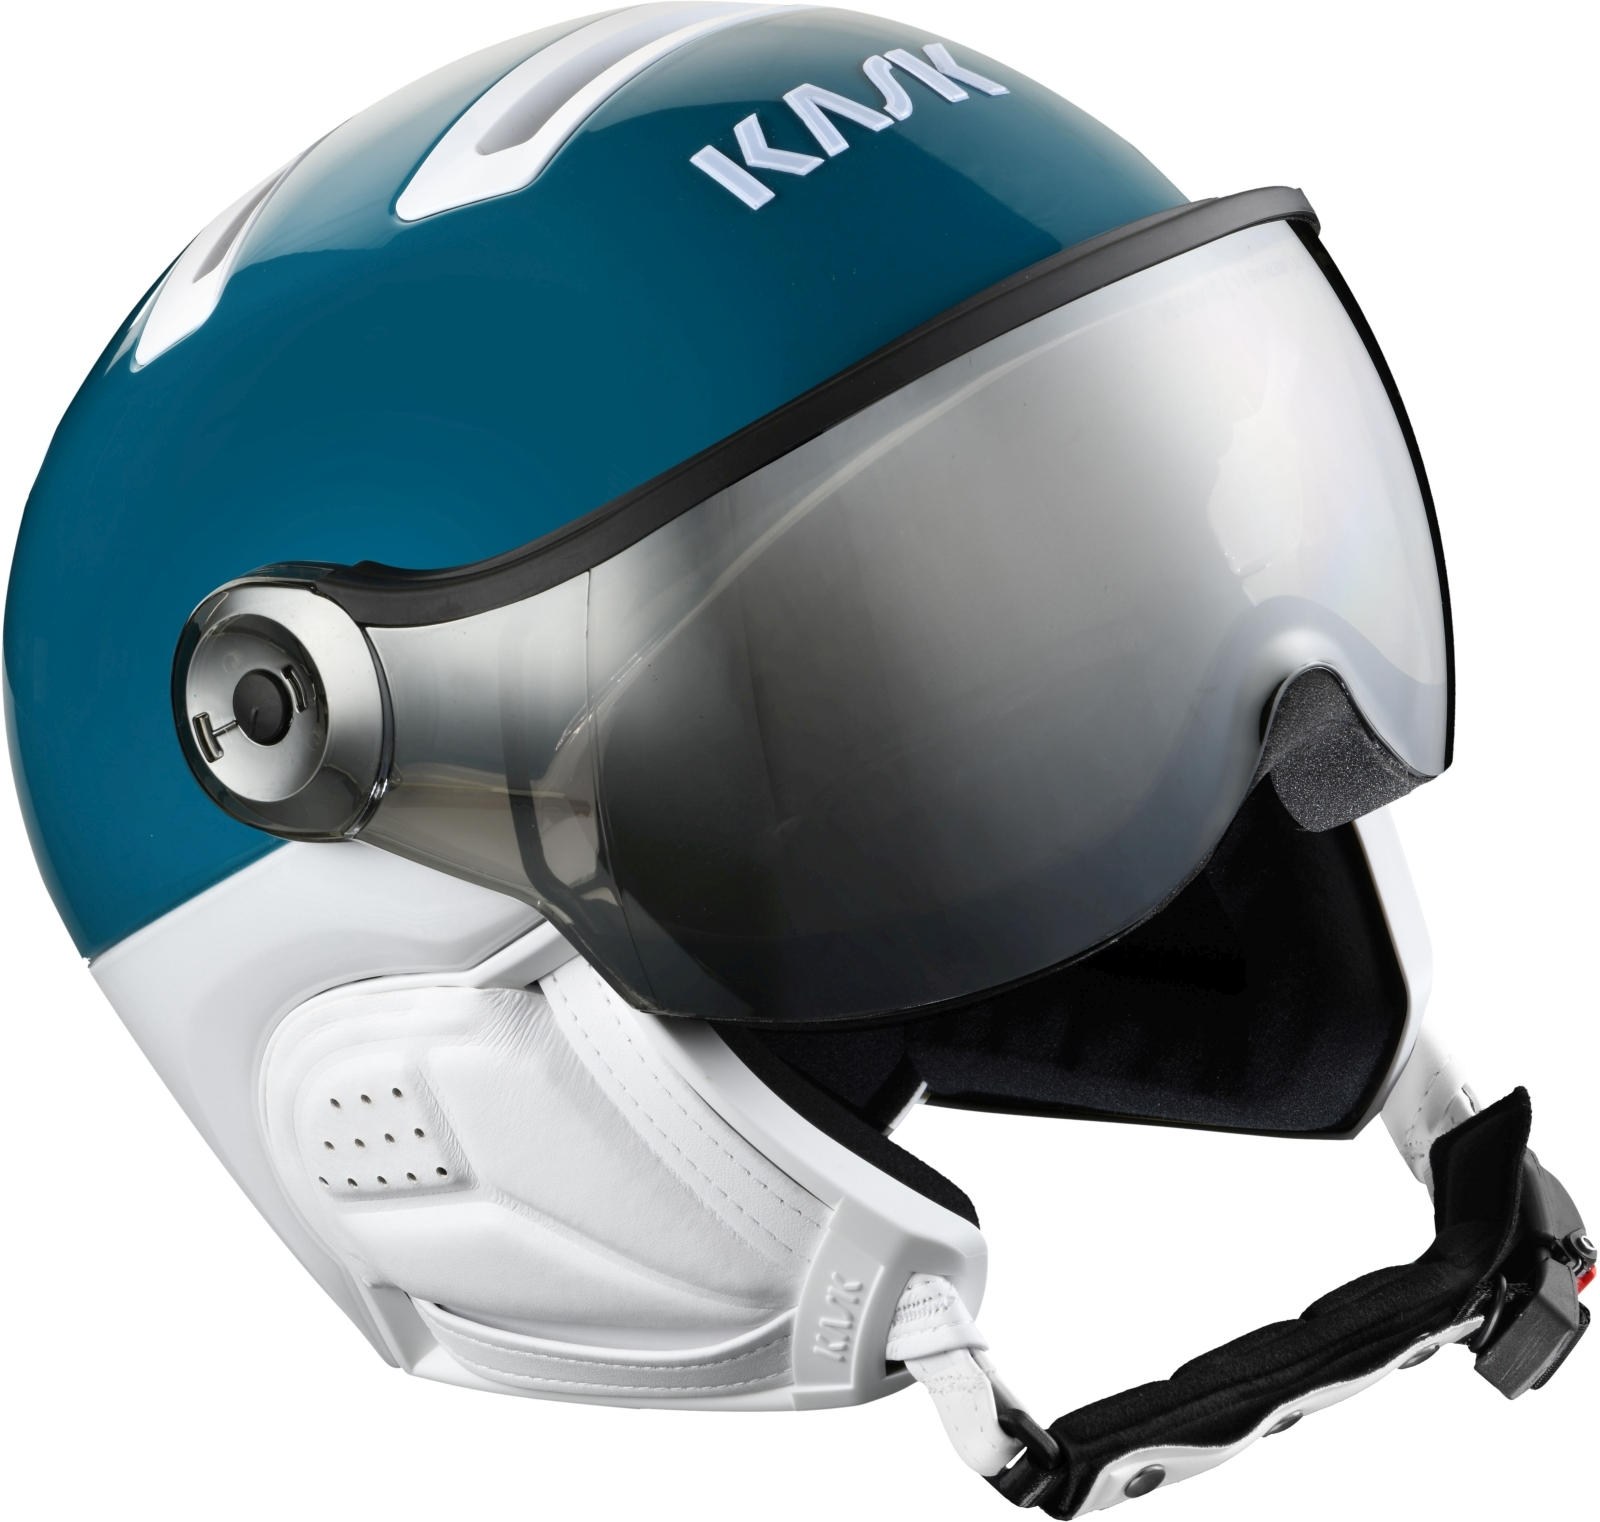 Kask Class Sport - Biscay Bay/silver mirror 54